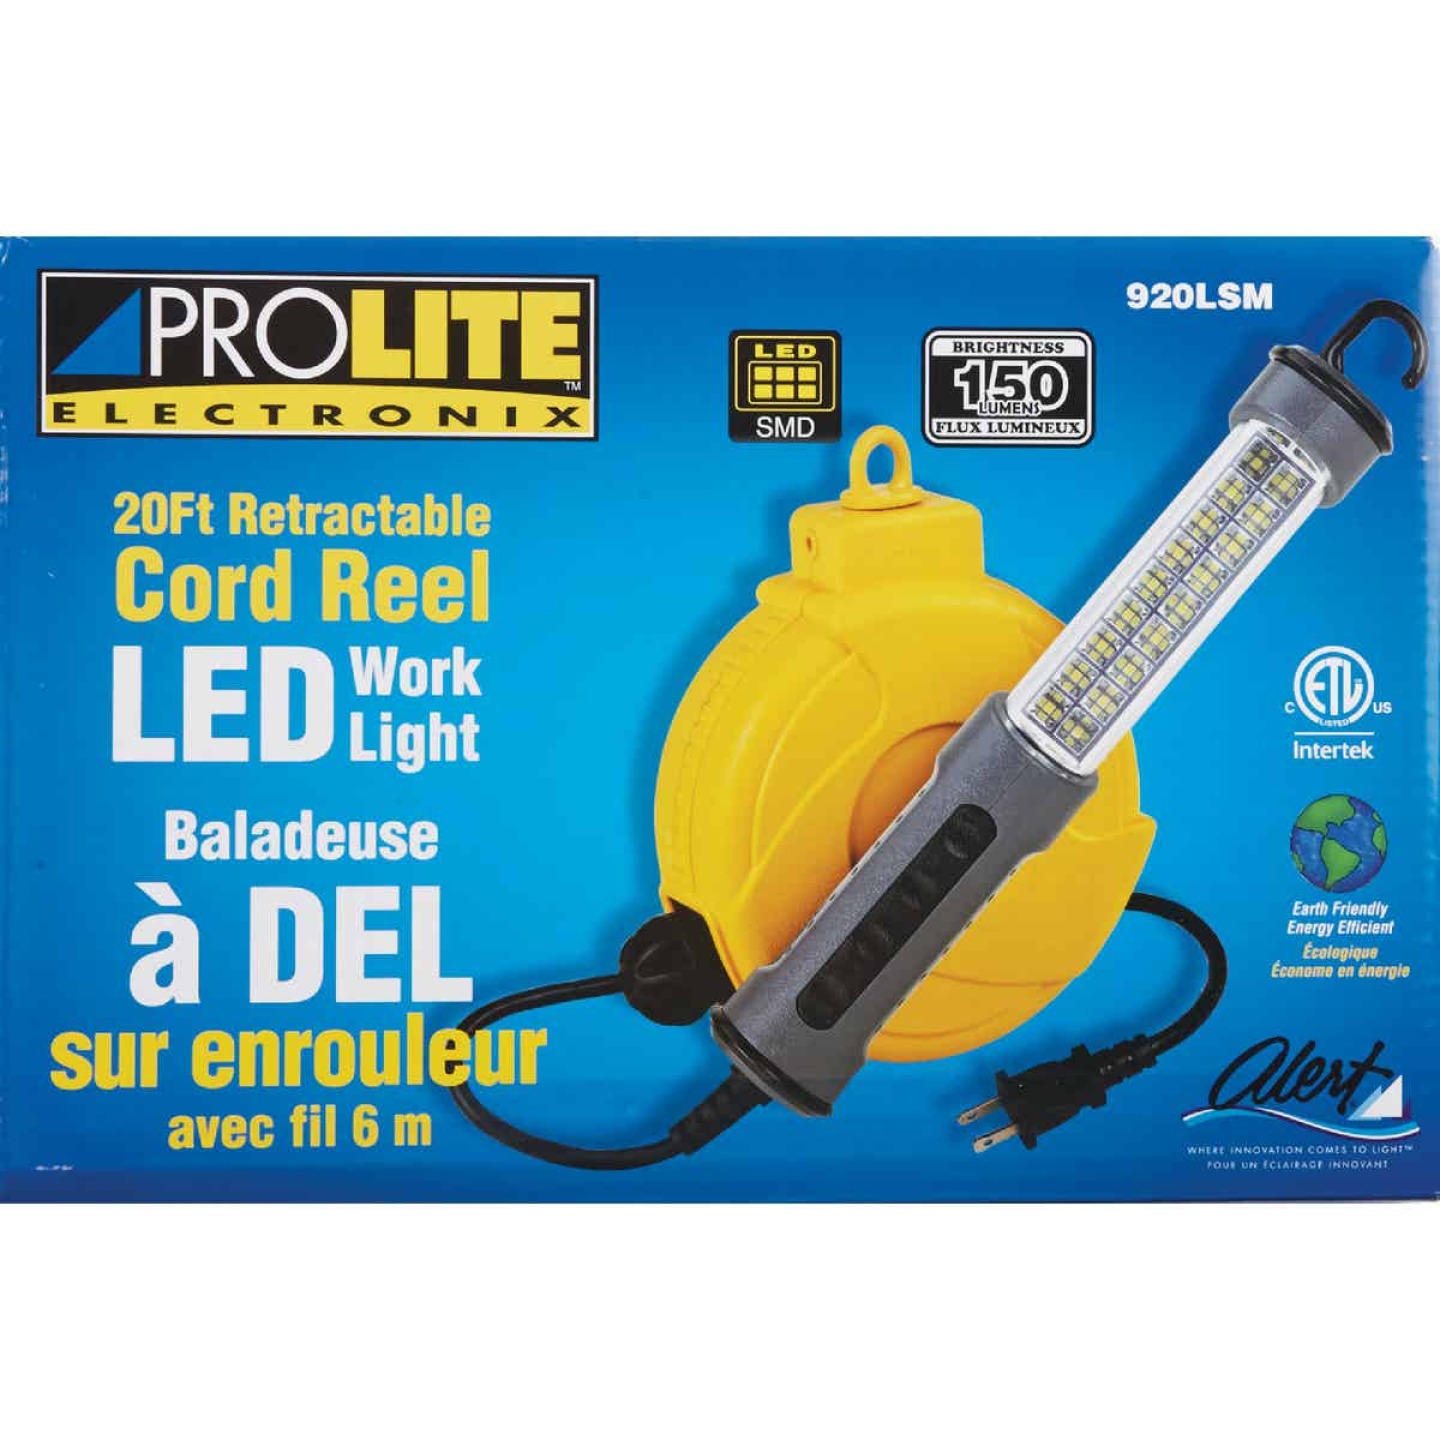 ProLite Electronix LED Trouble Light with 20 Ft. Power Cord Image 2